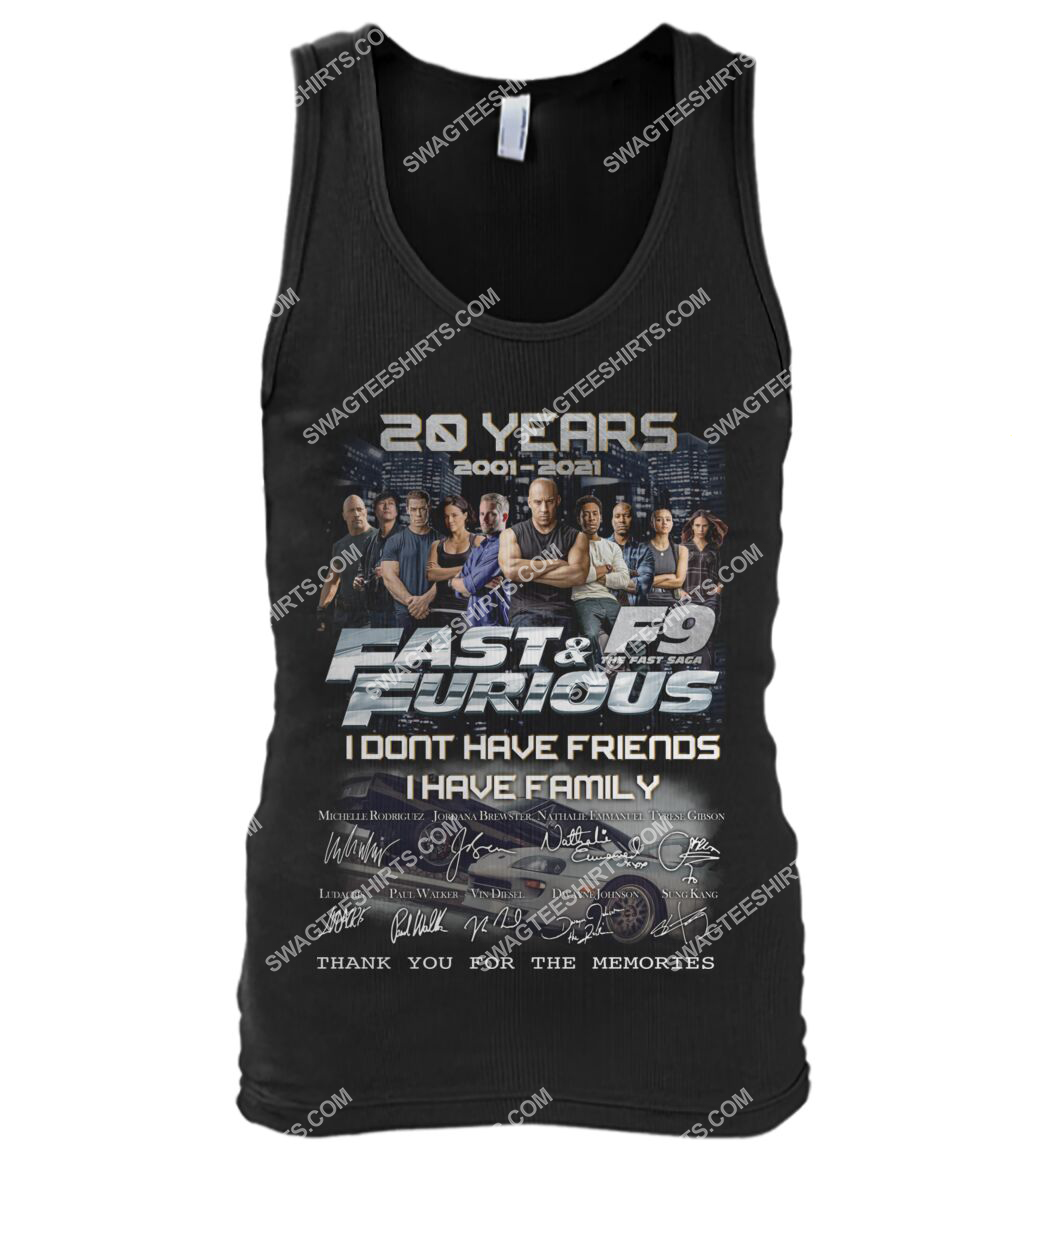 fast and furious 20 years i don't have friends i have family tank top 1